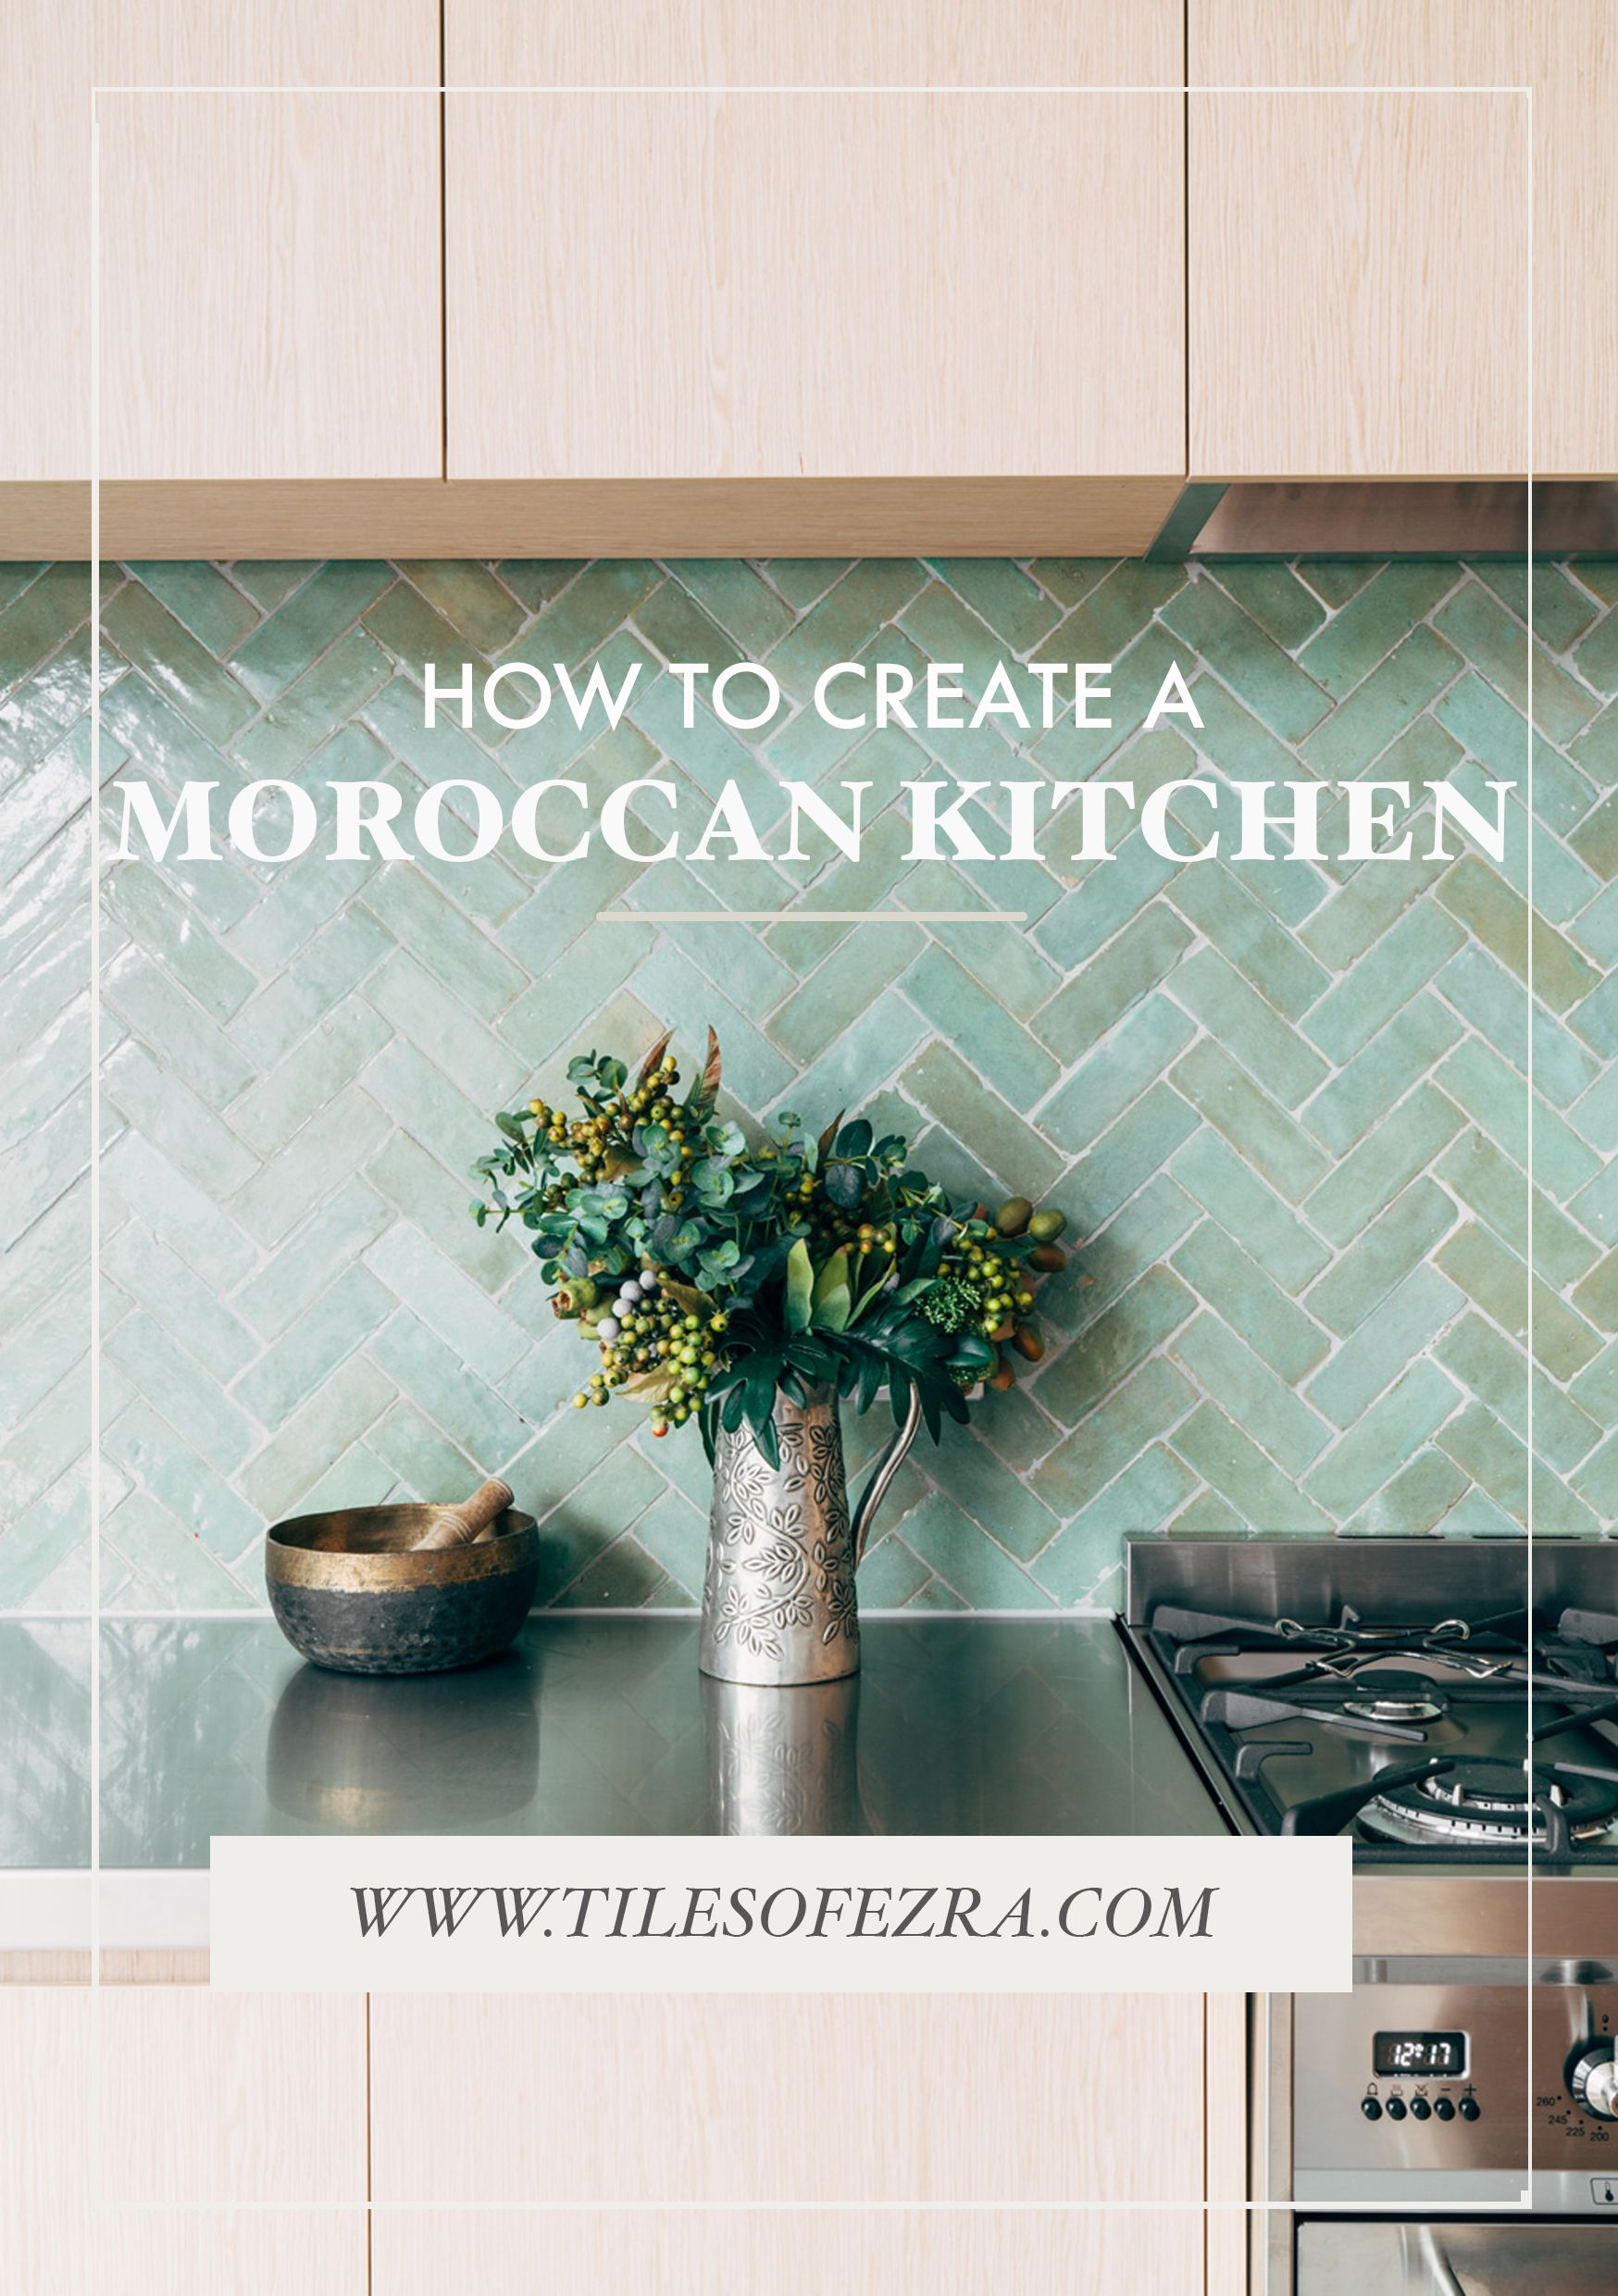 How to create a moroccan kitchen! Want to take your kitchen to the next level? Be sure to use these stunning Moroccan kitchen tiles available from TILES OF EZRA and take your home decor from drab to FAB. The tile used to achieve this beautiful Moroccan style was the FL006 in colour Aqua. These decorative tiles are a must - a good idea for a kitchen splashback or decorative wall!! This tile and loads more available at www.tilesofezra.com #kitchensplashbacks